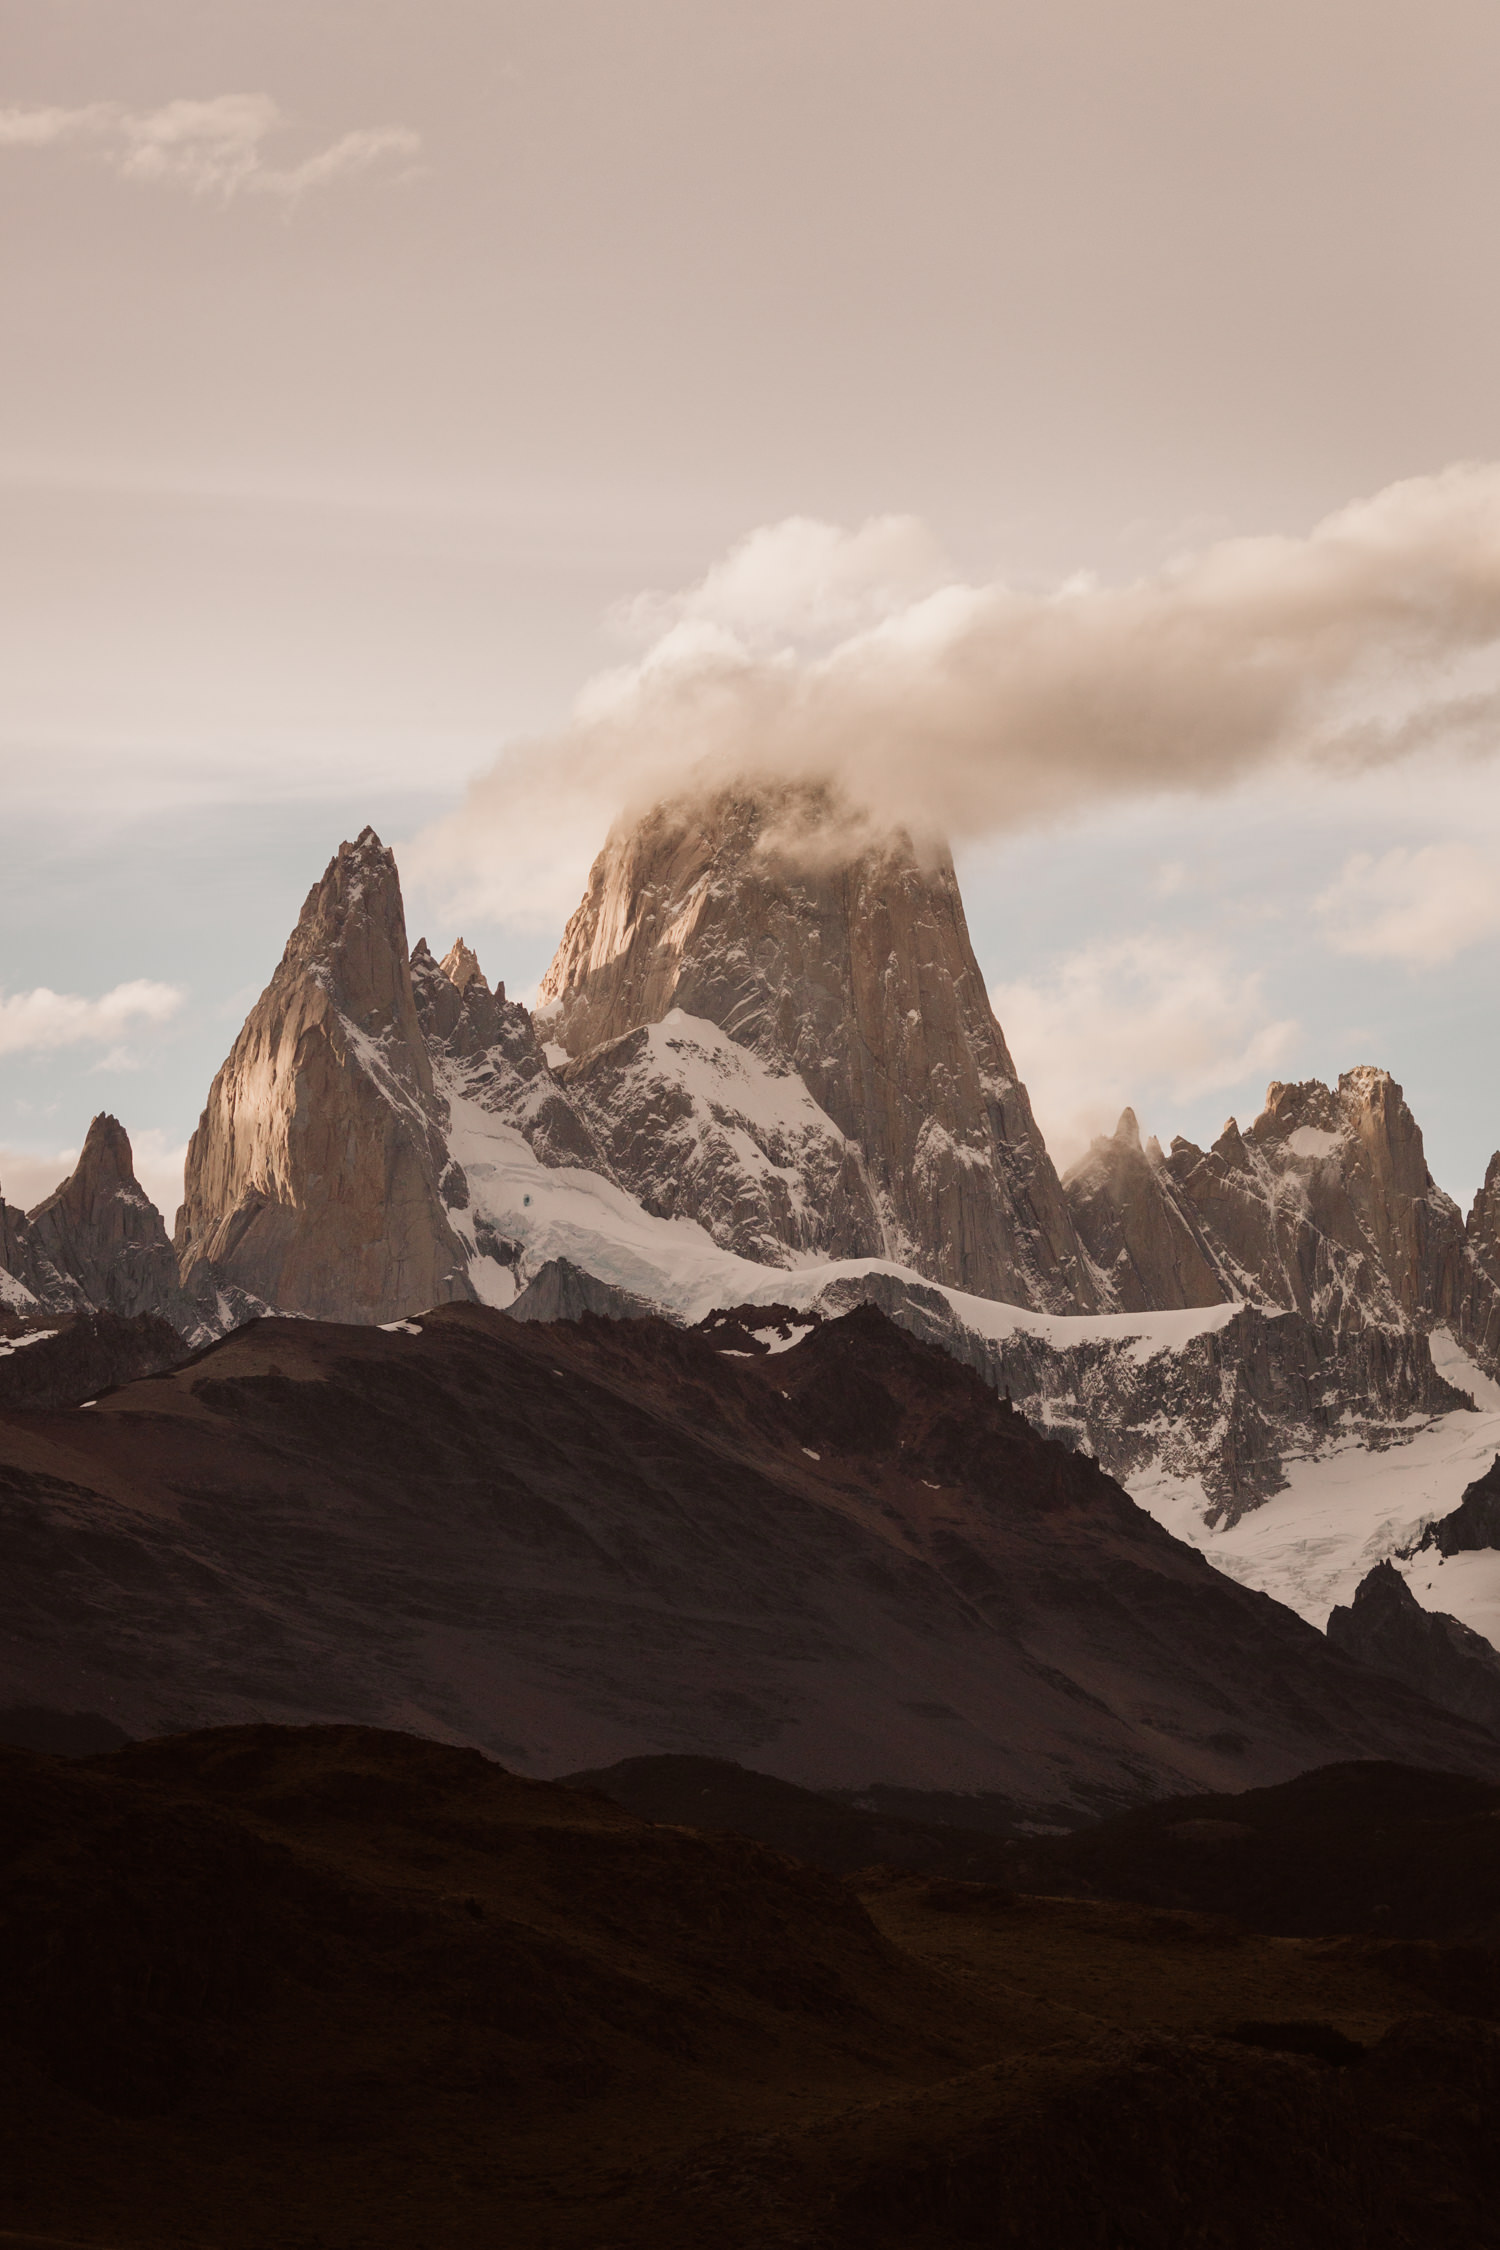 patagonia-adventure-photographer-99.jpg